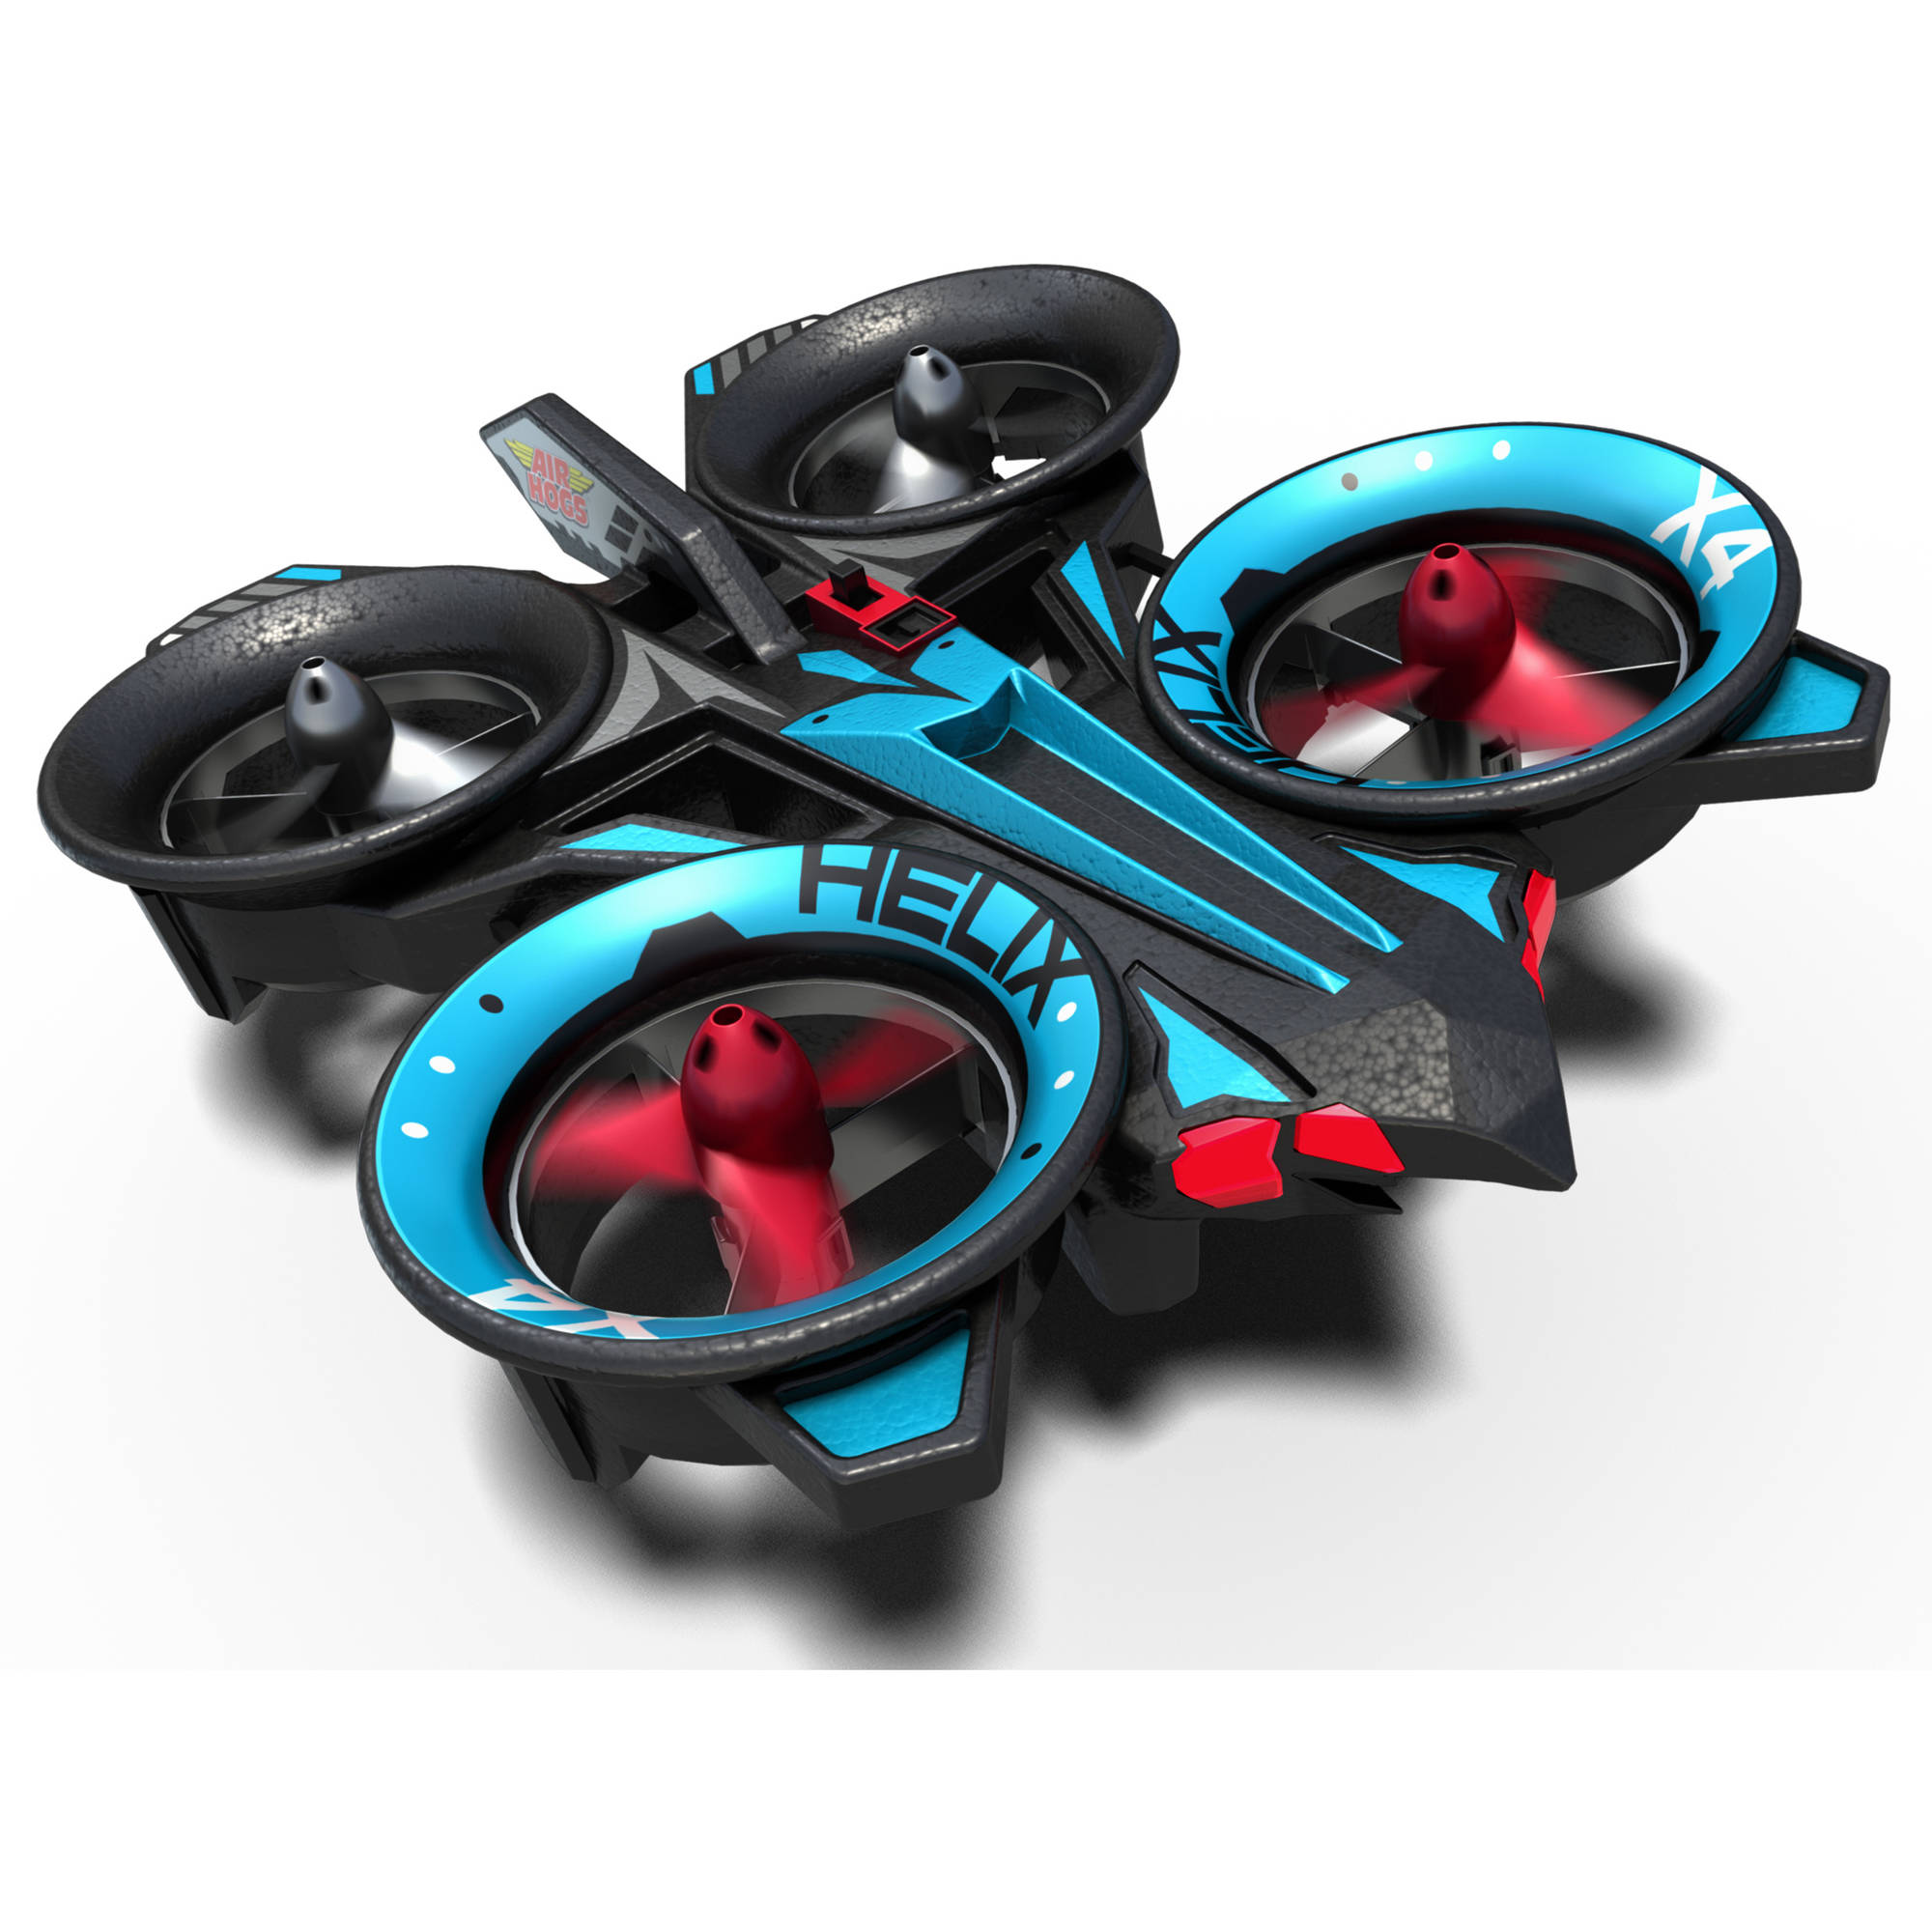 Air Hogs RC Helix X4 Stunt 2.4 GHZ Quad Copter, Blue and Red